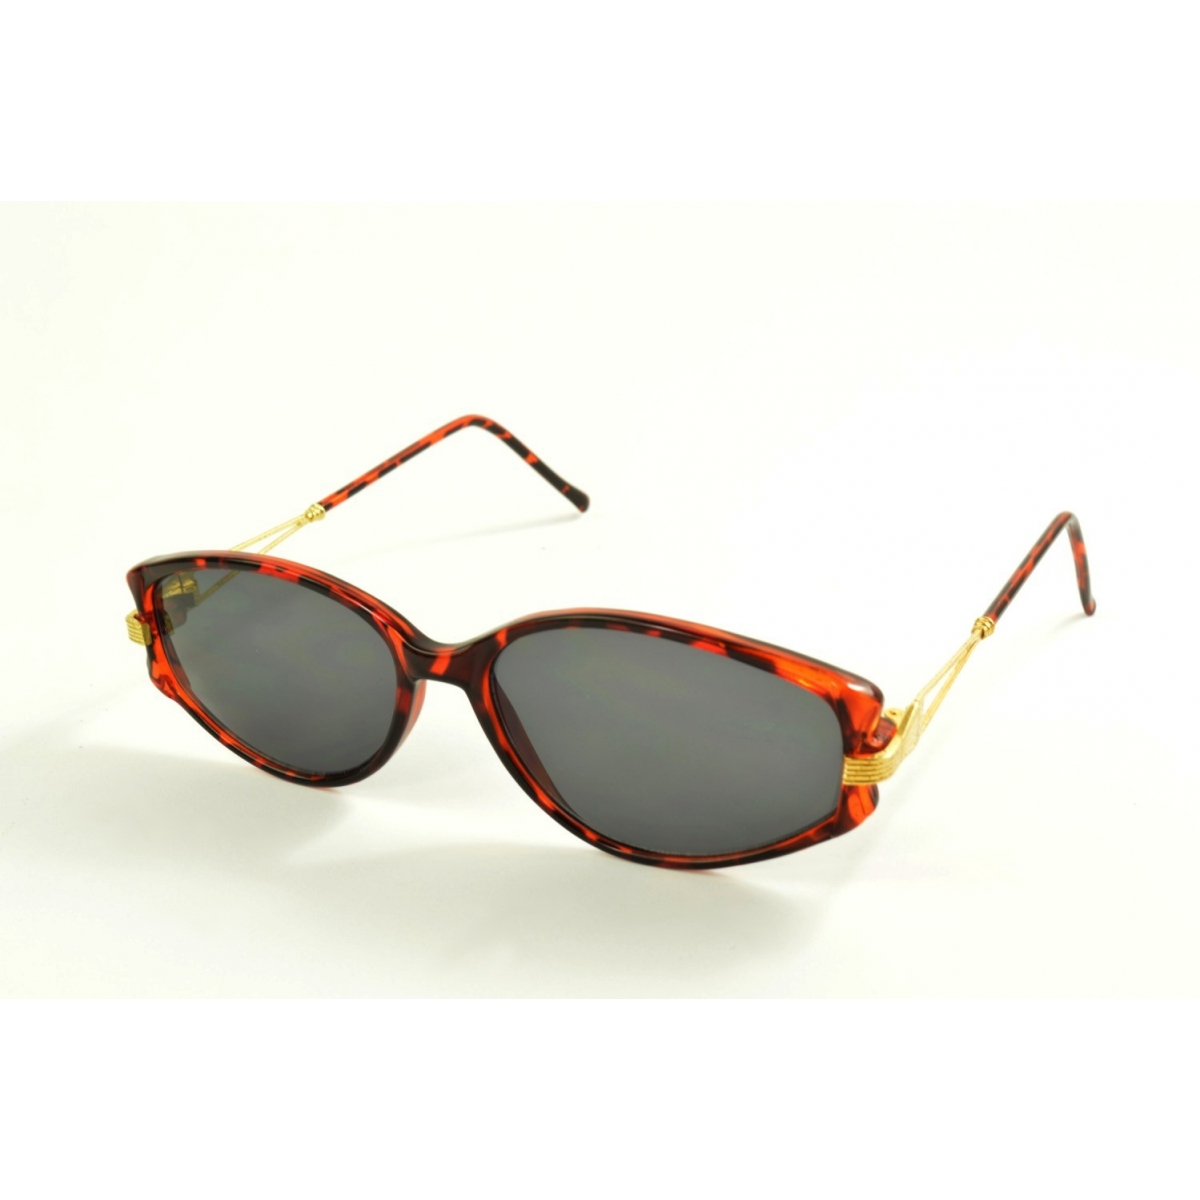 Oval sunglasses with golden metal and plastic tortoiseshell temples